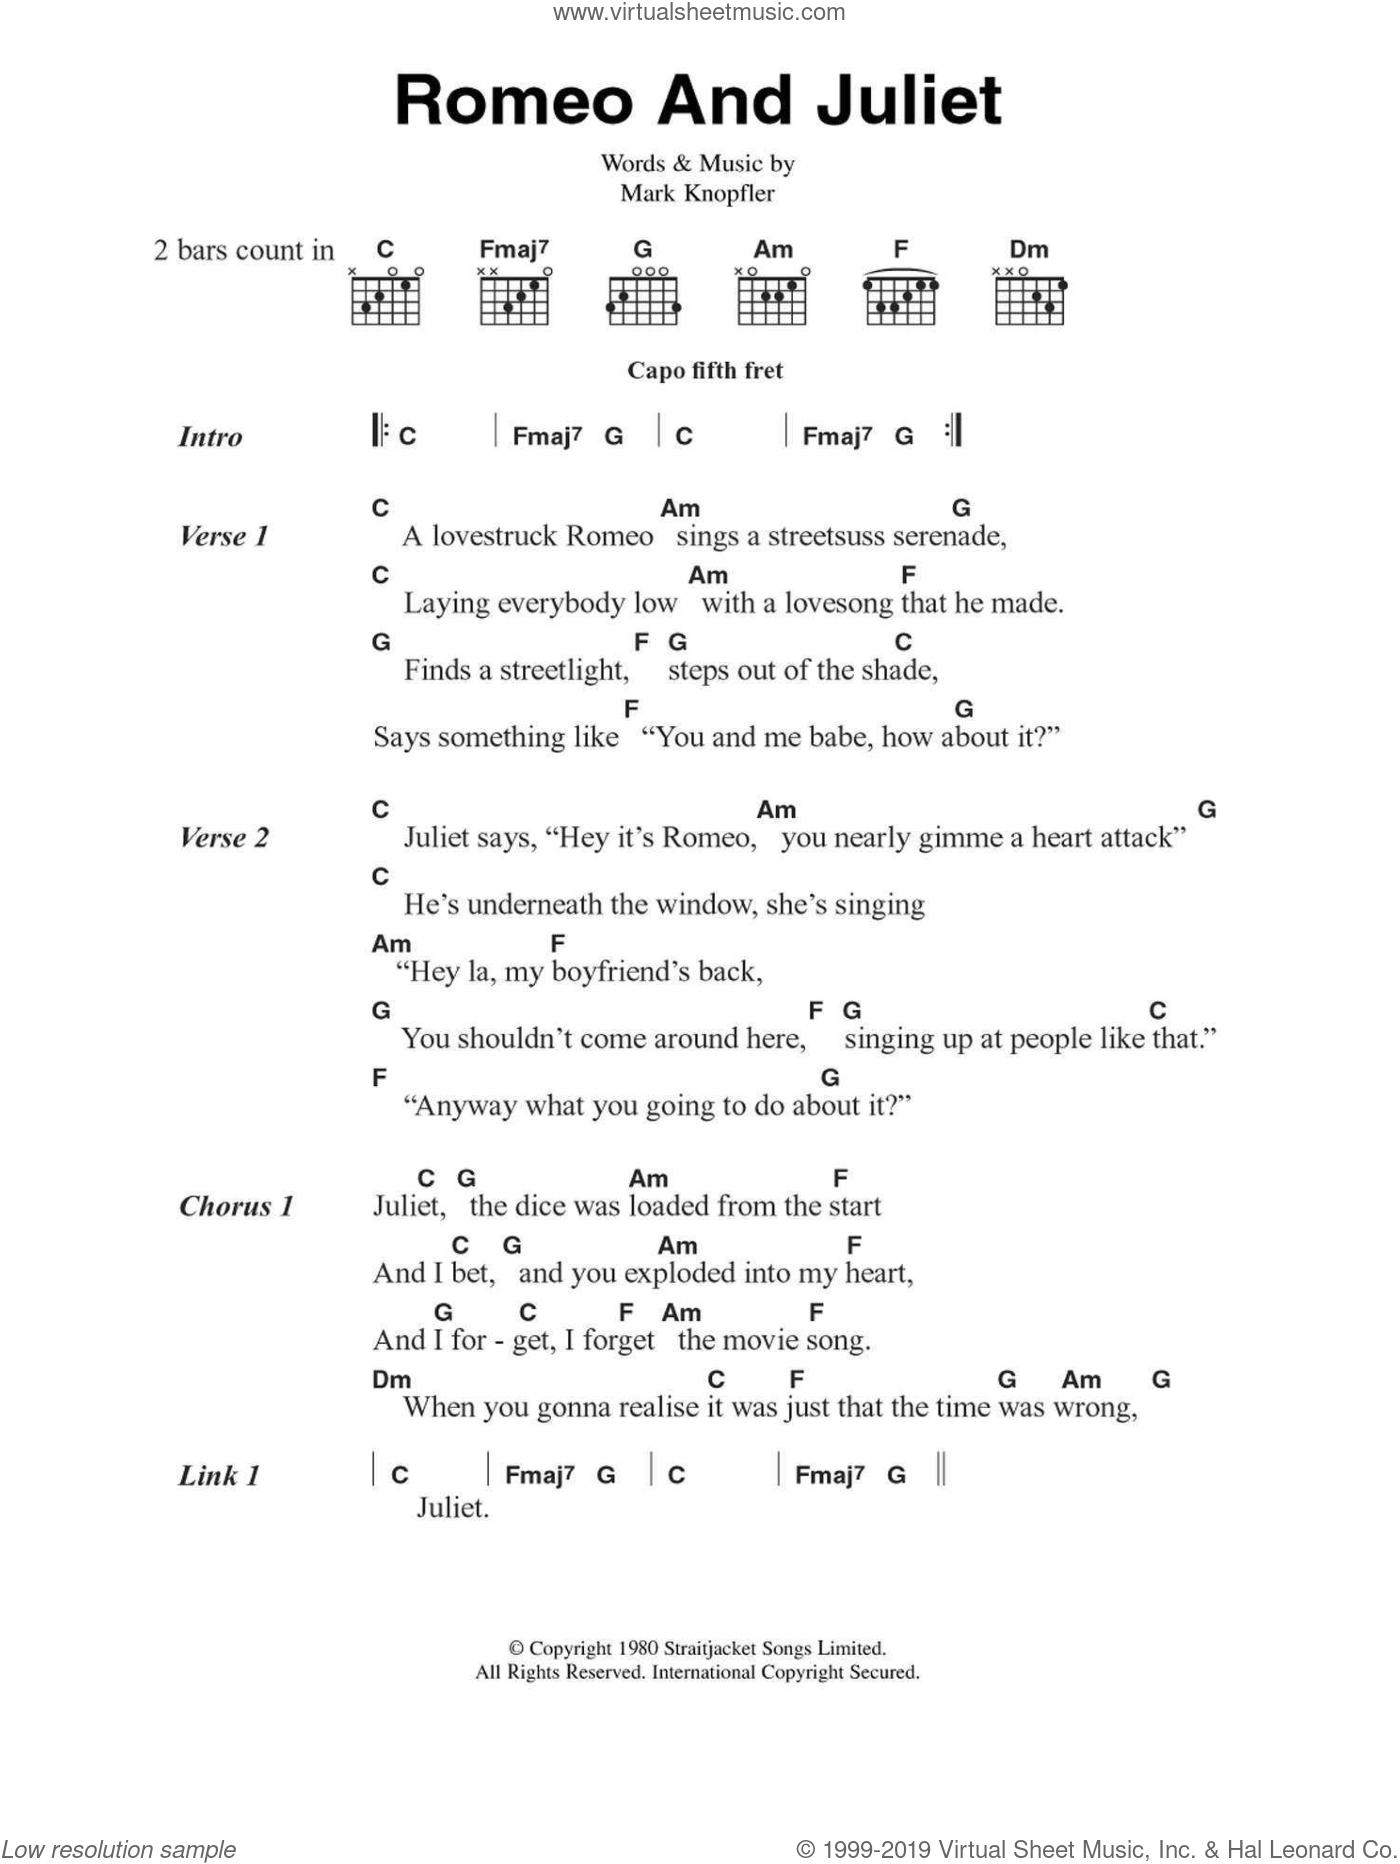 Romeo And Juliet sheet music for guitar (chords, lyrics, melody) by Mark Knopfler